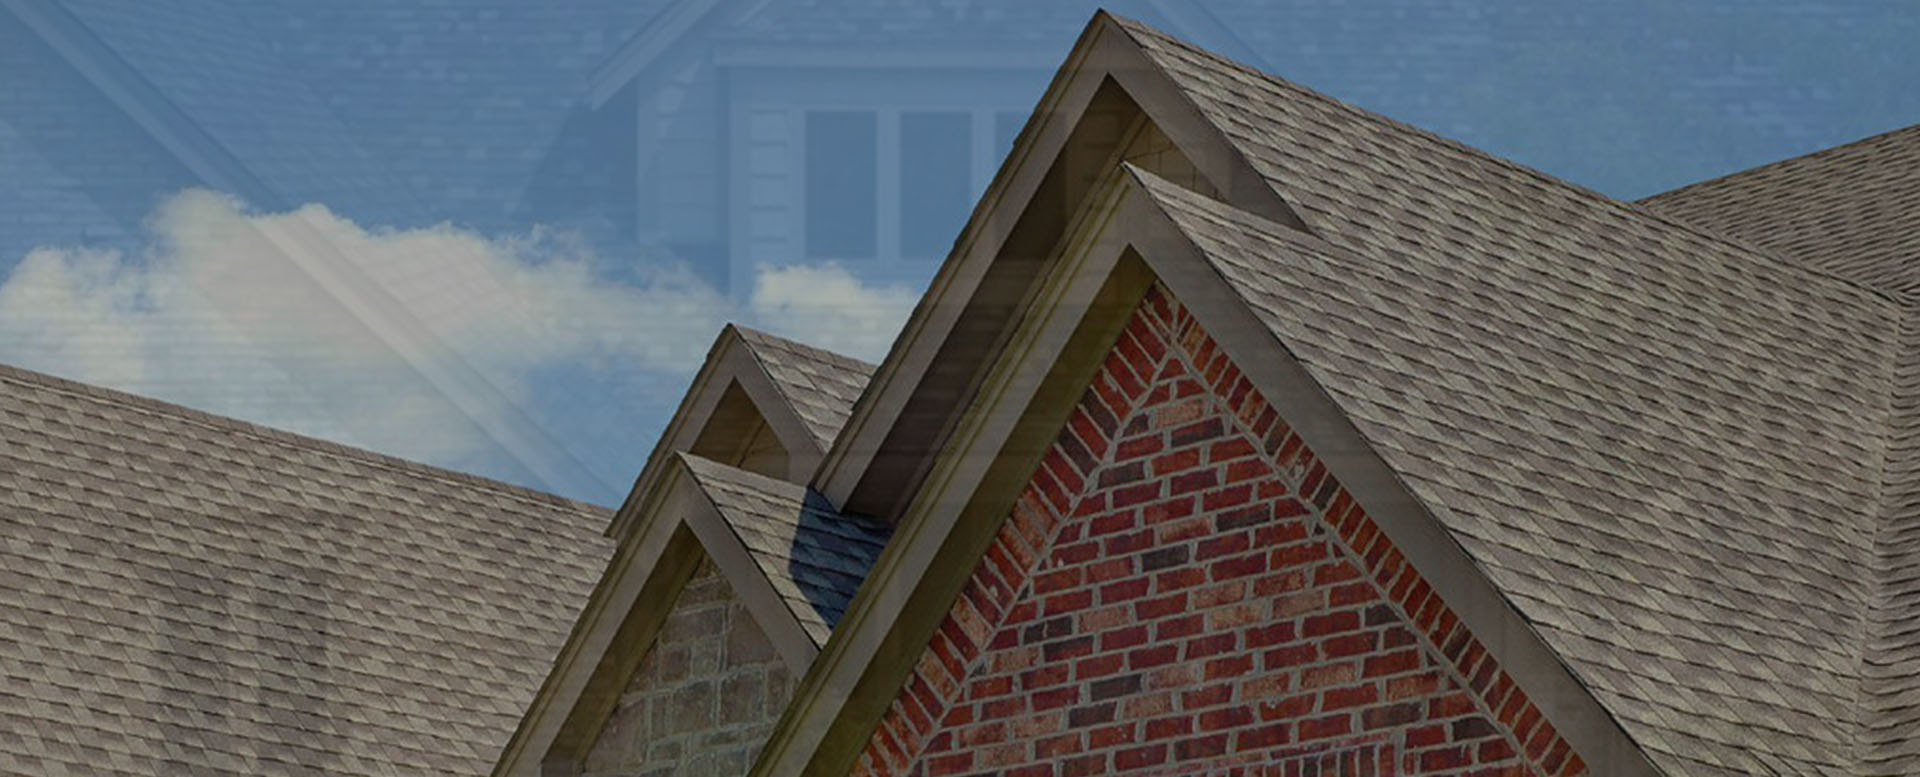 Wiesen Roofing Commercial Roofing Roofing Repair And